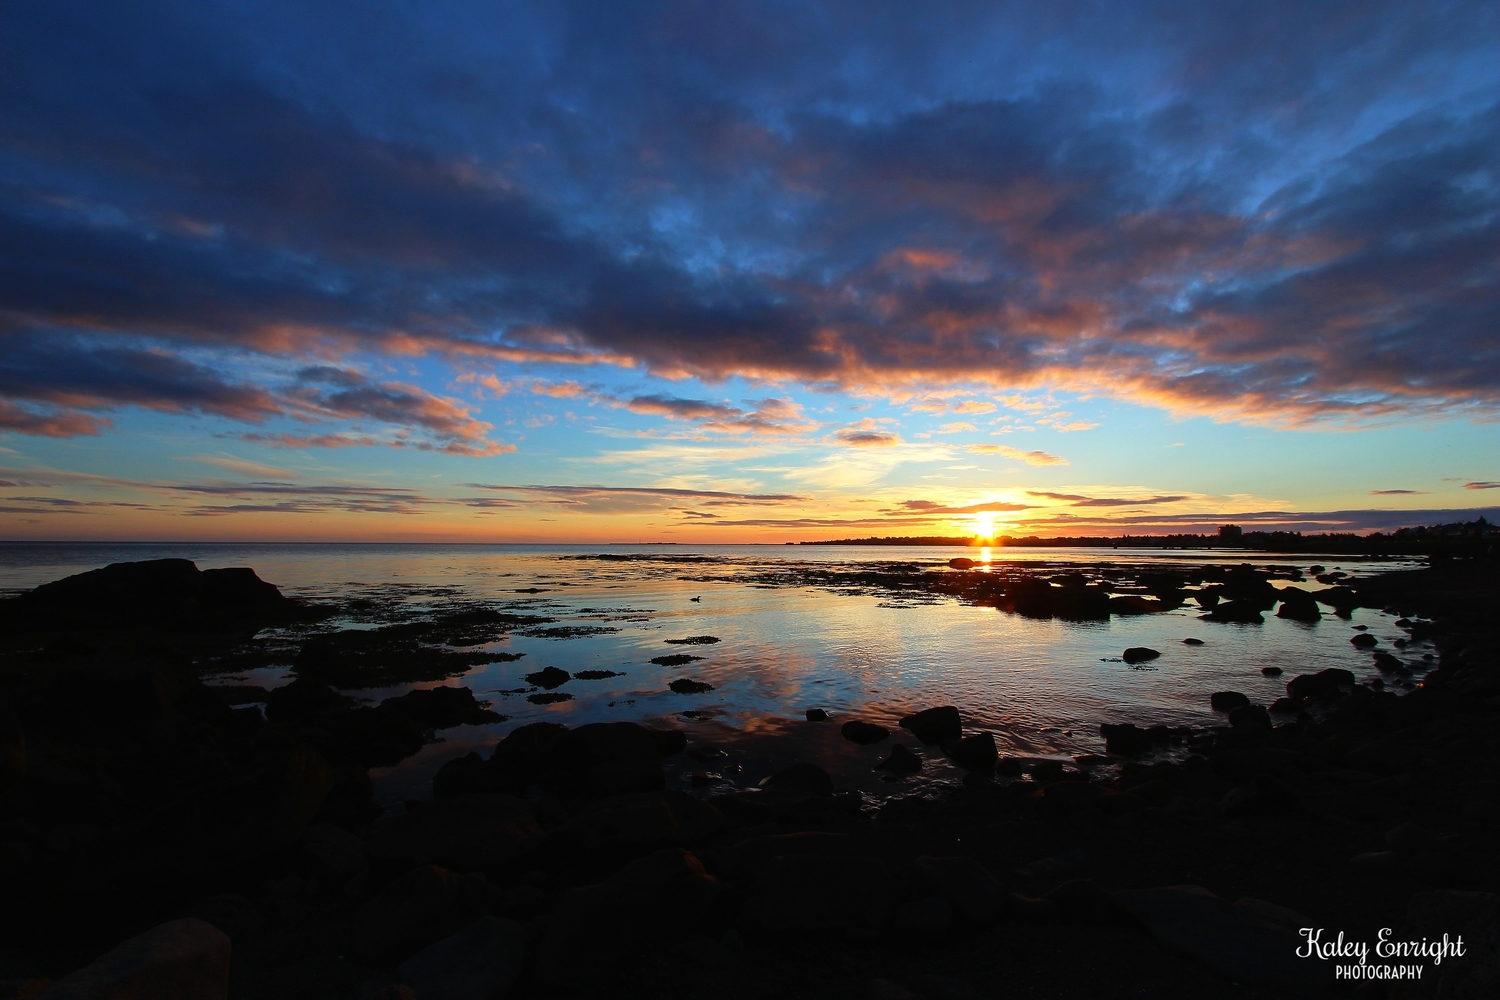 iceland sunset kaley enright.jpg